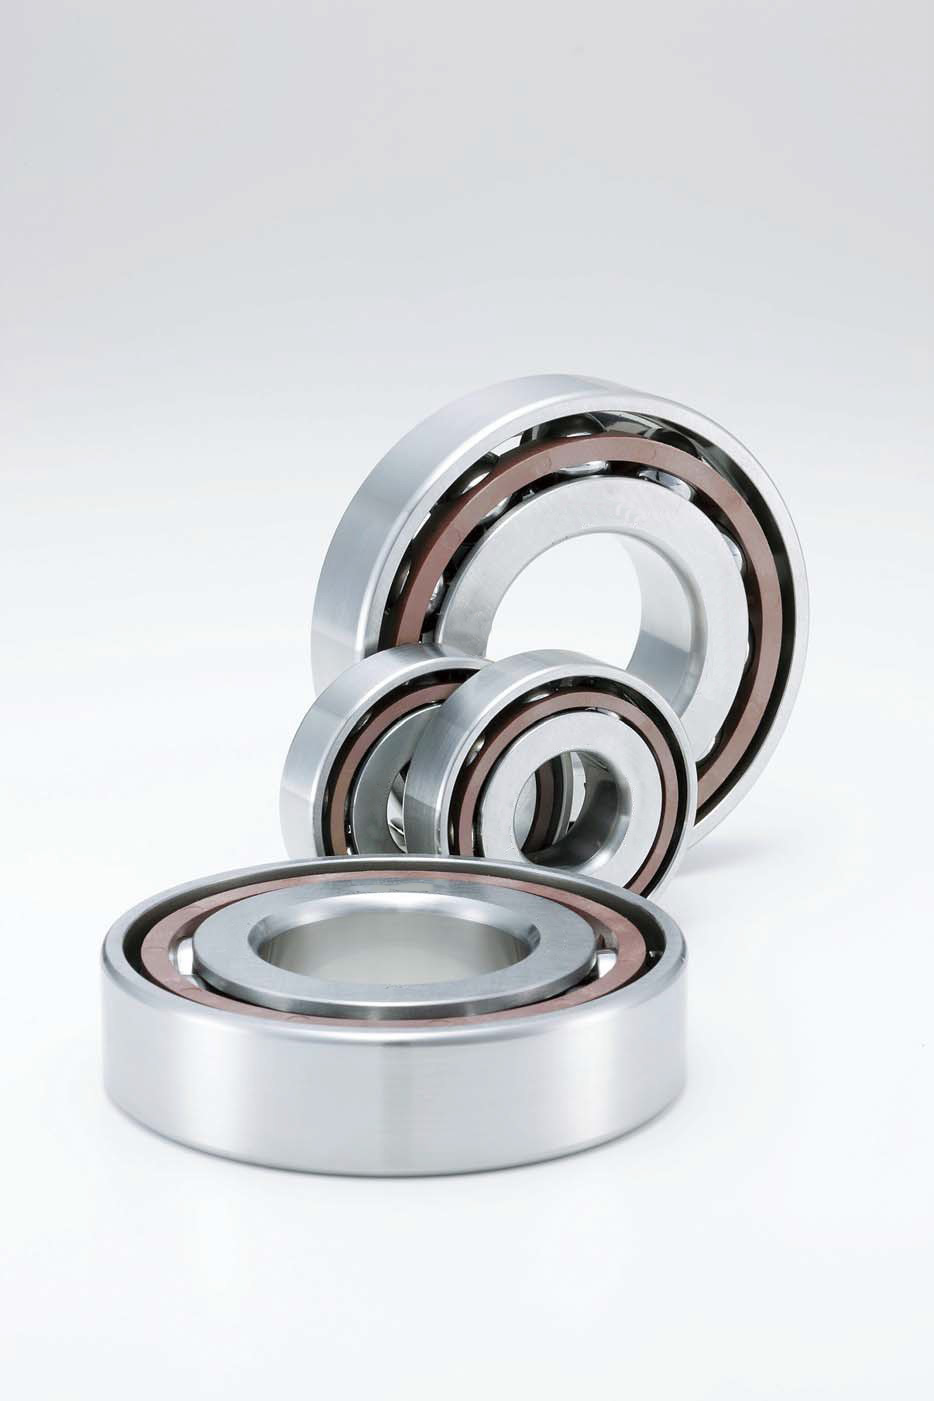 7005C TYN SUL P4 Spindle Angular Contact Ball Bearings ABEC-7 7005 7005C 7005AC 25x47x12 SUPER PRECISION BEARING love from paddington